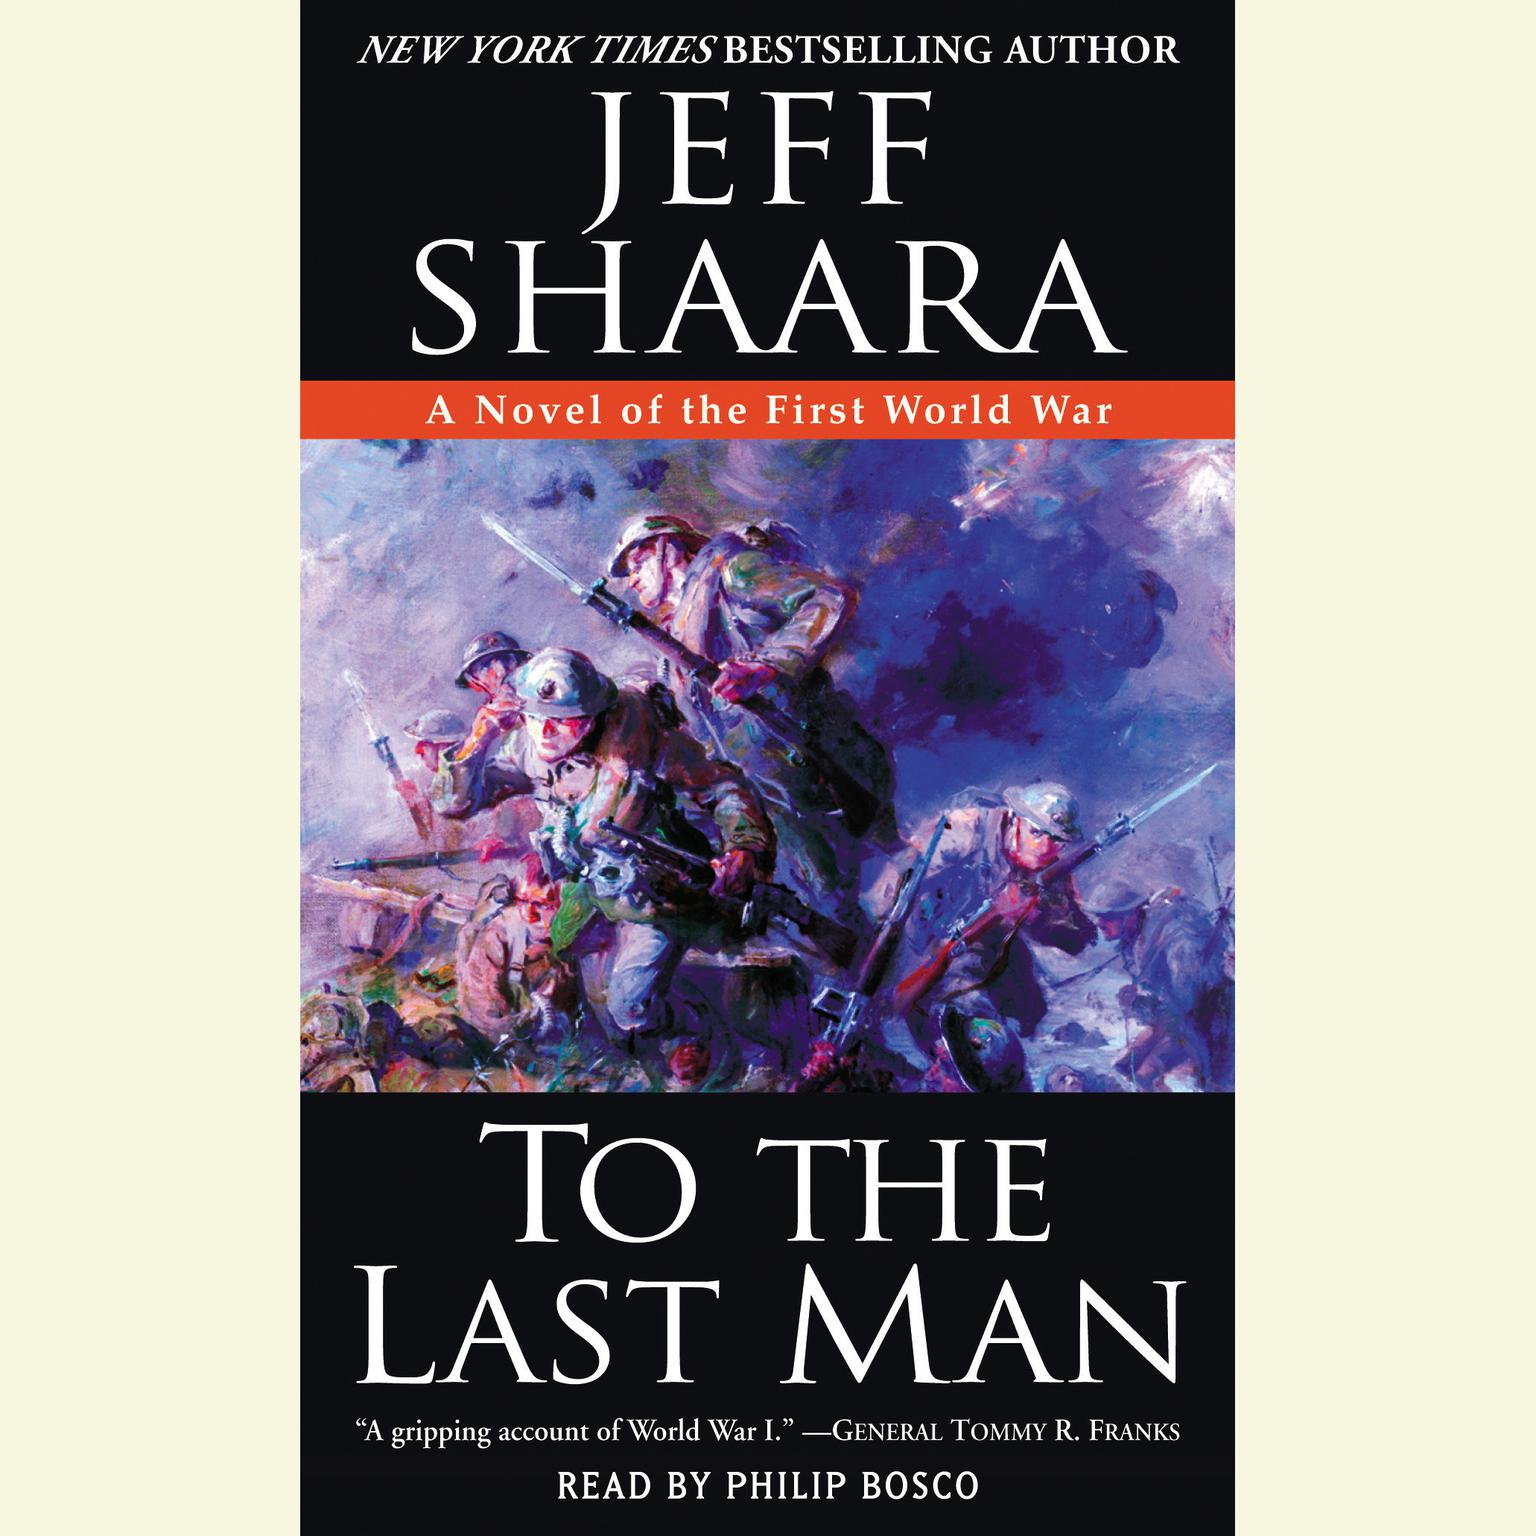 To the Last Man: A Novel of the First World War Audiobook, by Jeff